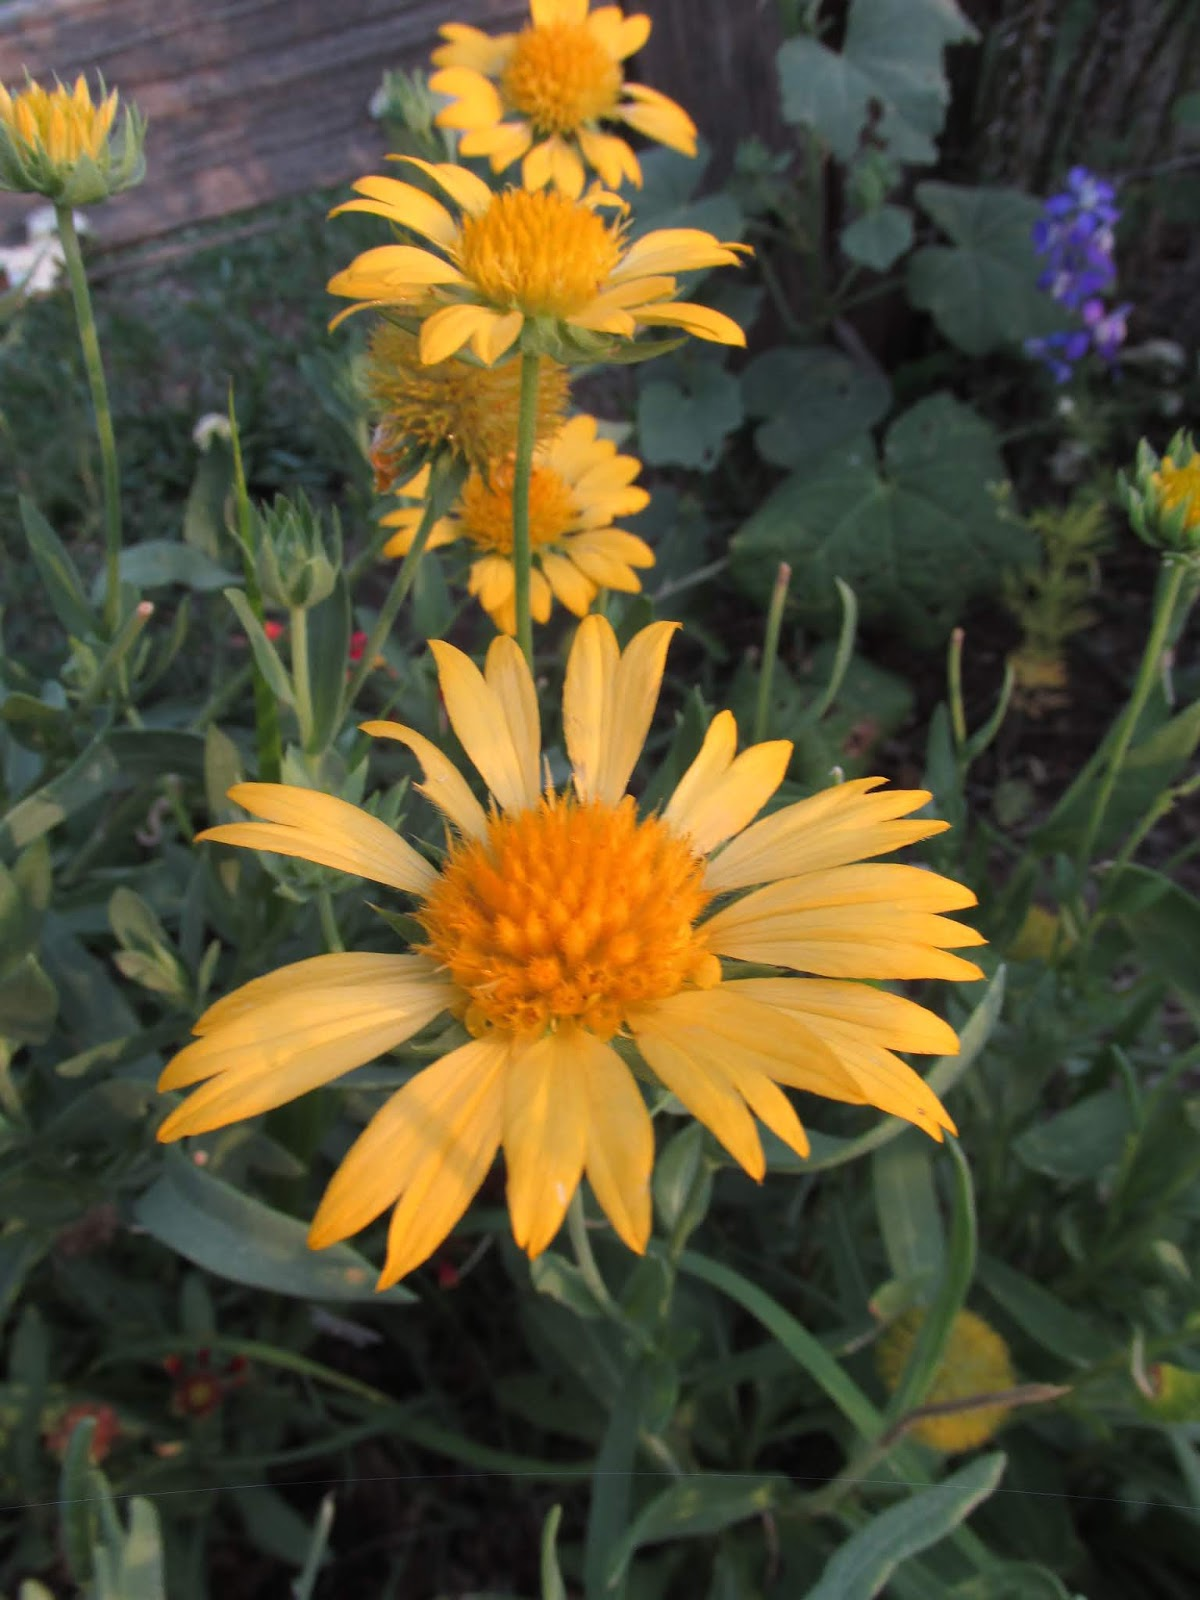 See The Beauty In The Ordinary End Of June Flower Garden